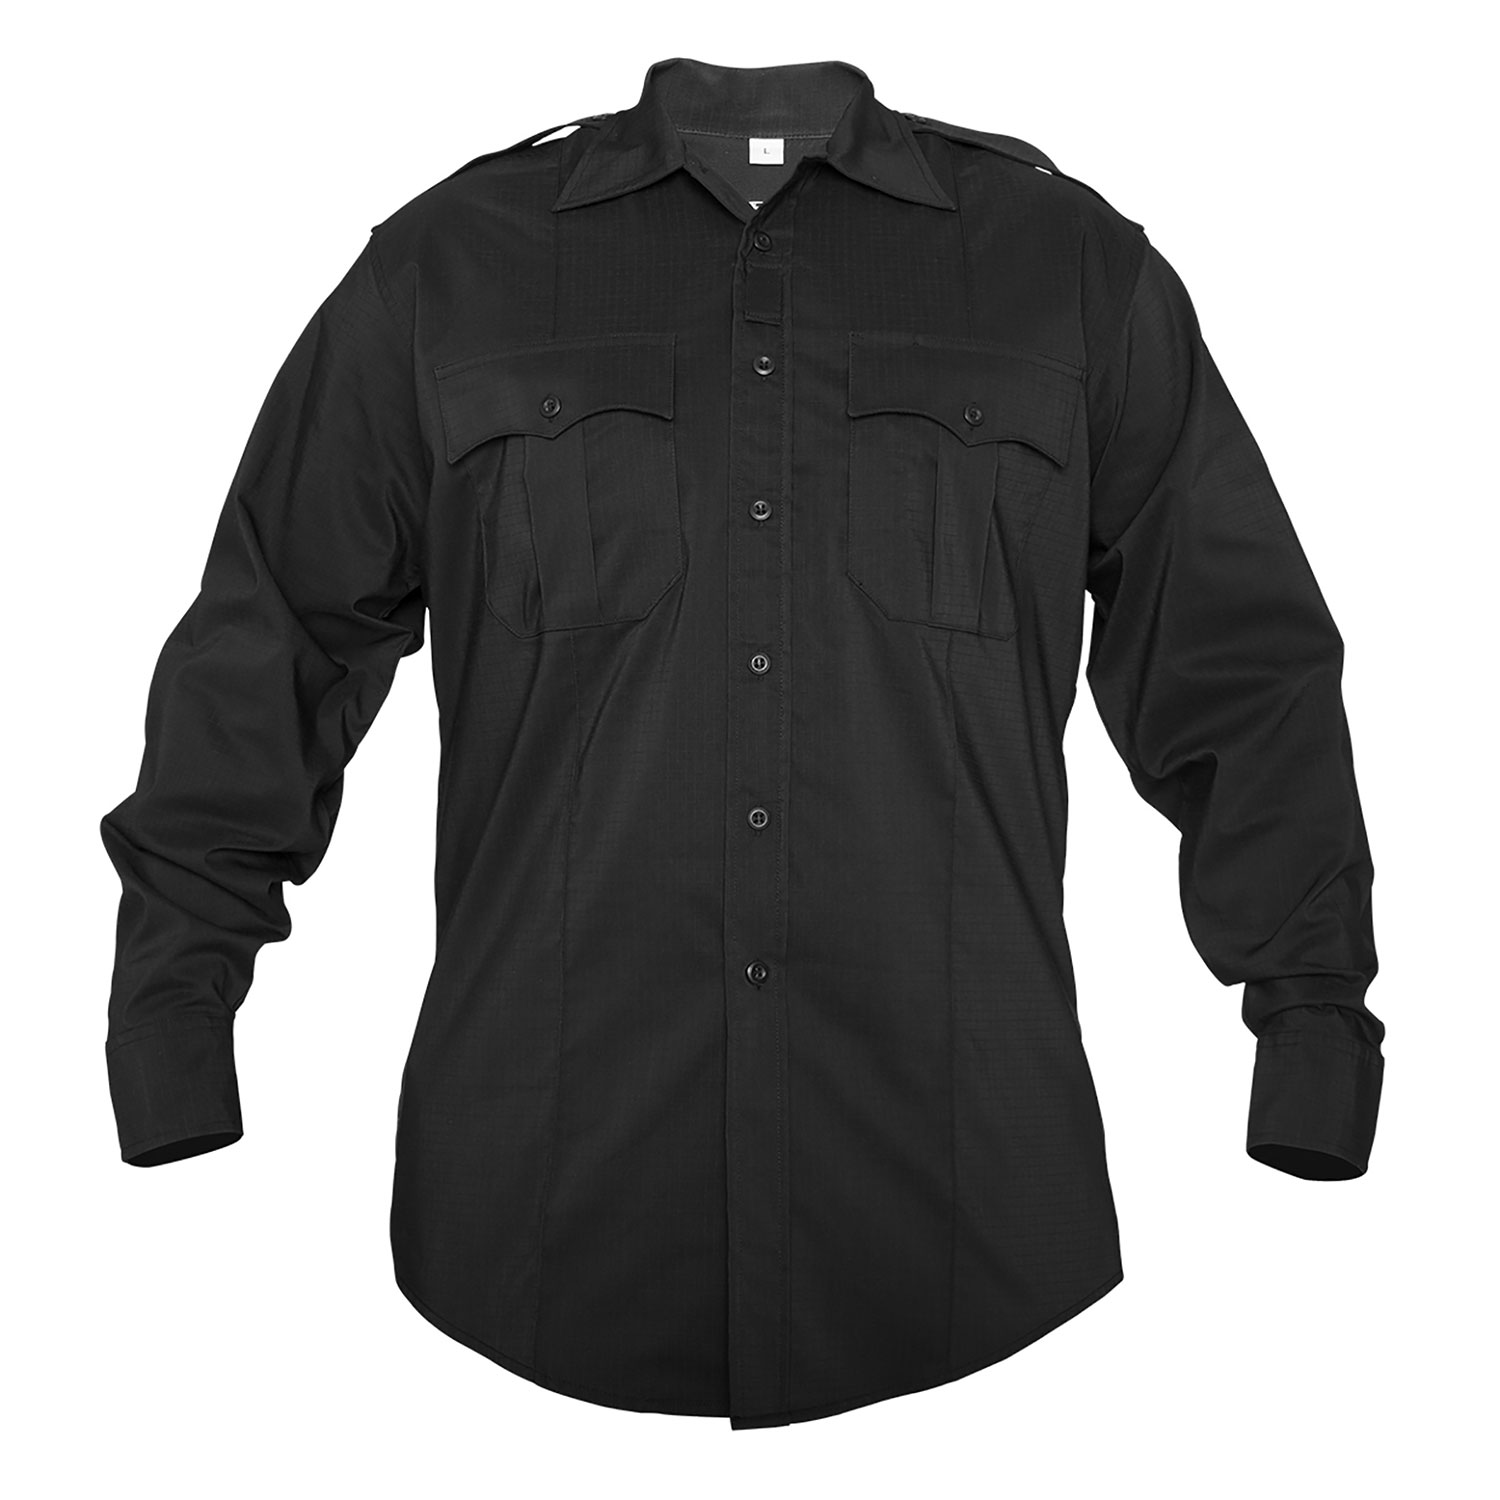 Elbeco Reflex Ripstop Long Sleeve Shirt